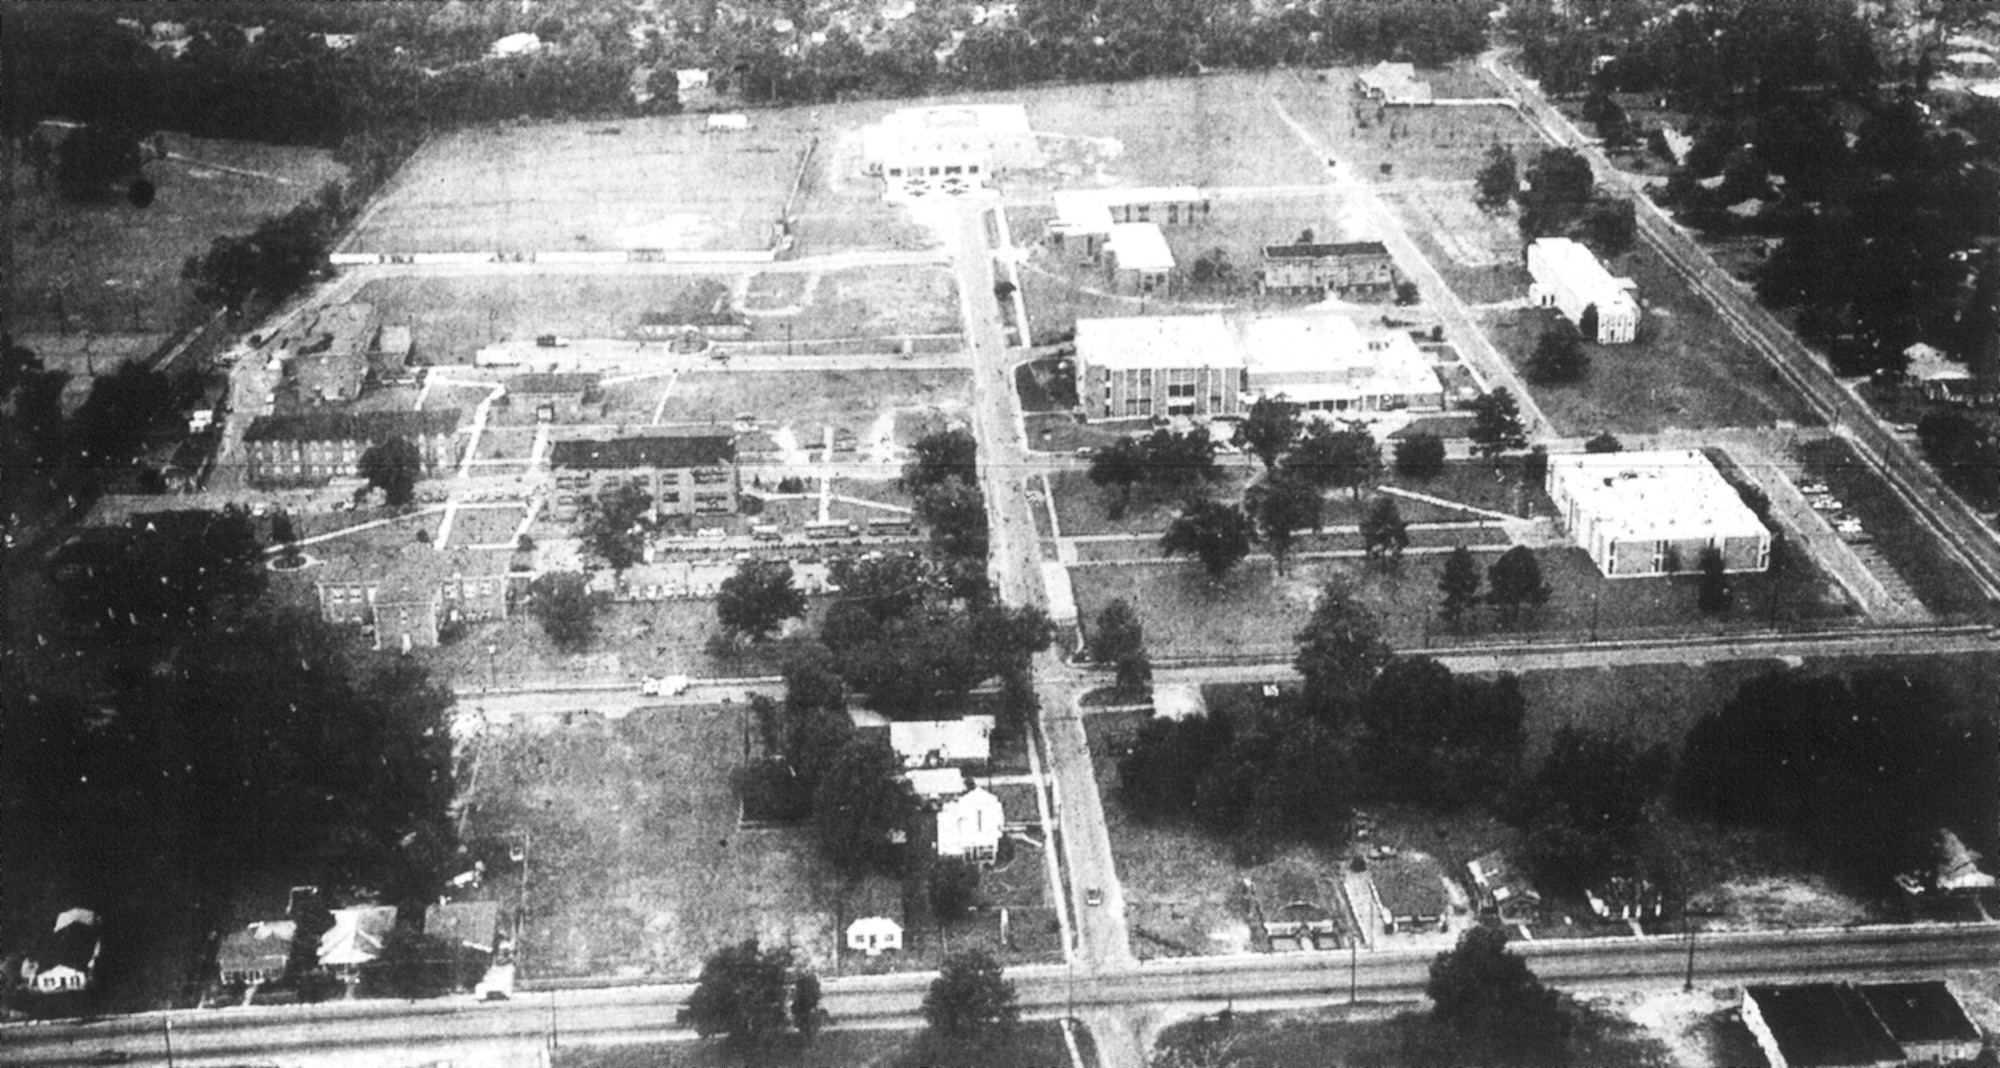 Morris College is seen in this aerial photo from the early 1990s during its expansion.